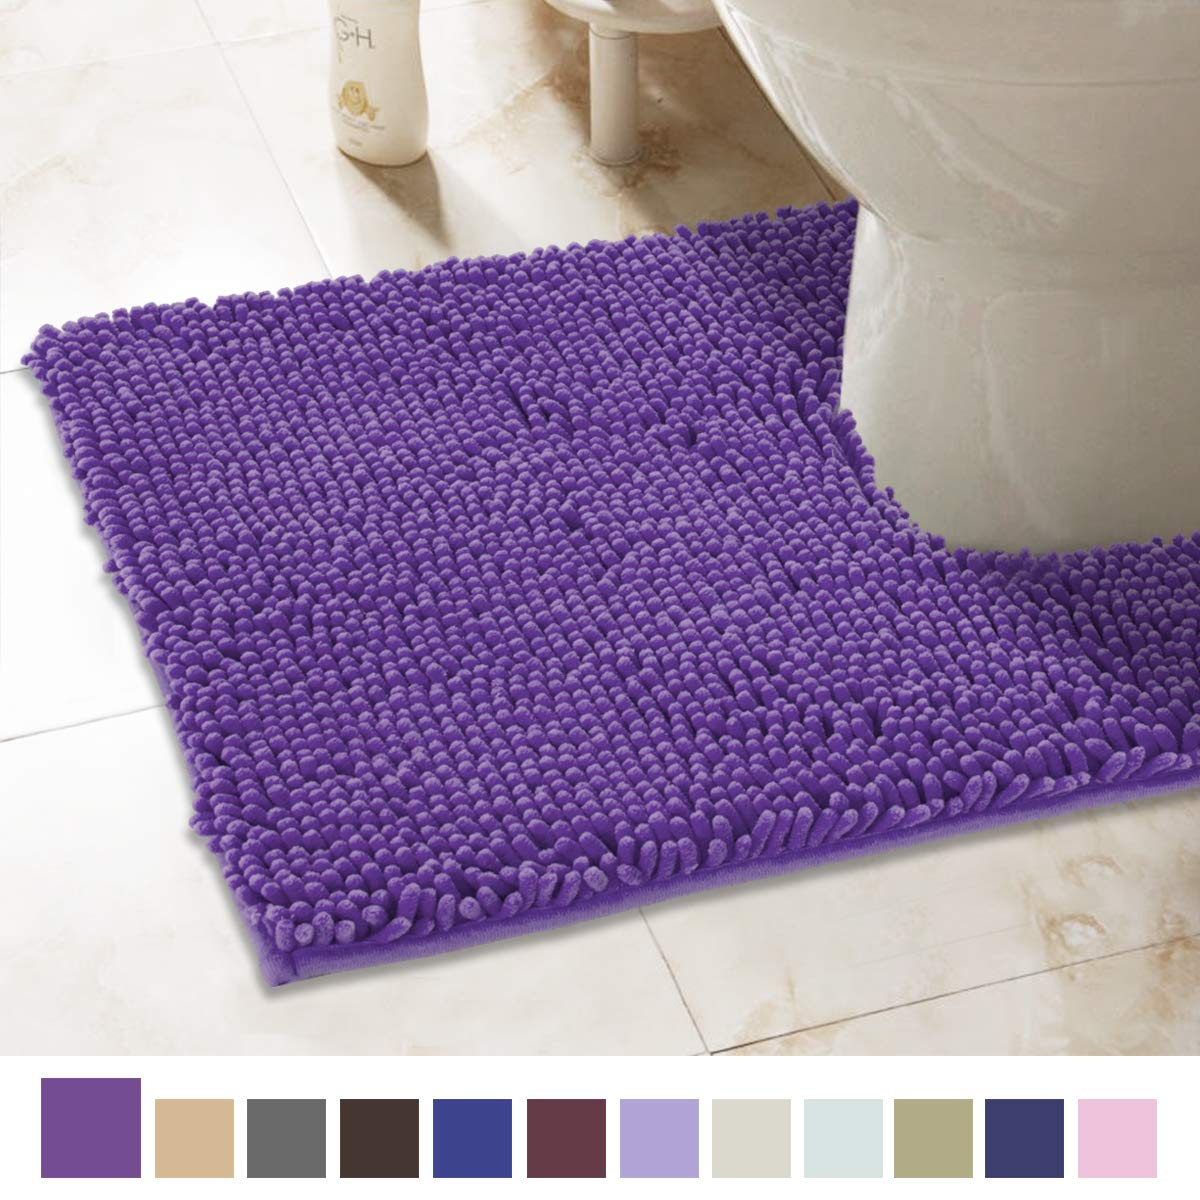 ITSOFT Non-Slip Shaggy Chenille Toilet Contour Bathroom Rug with Water Absorbent, Machine Washable, 21 x 24 Inches U-Shaped Lilac